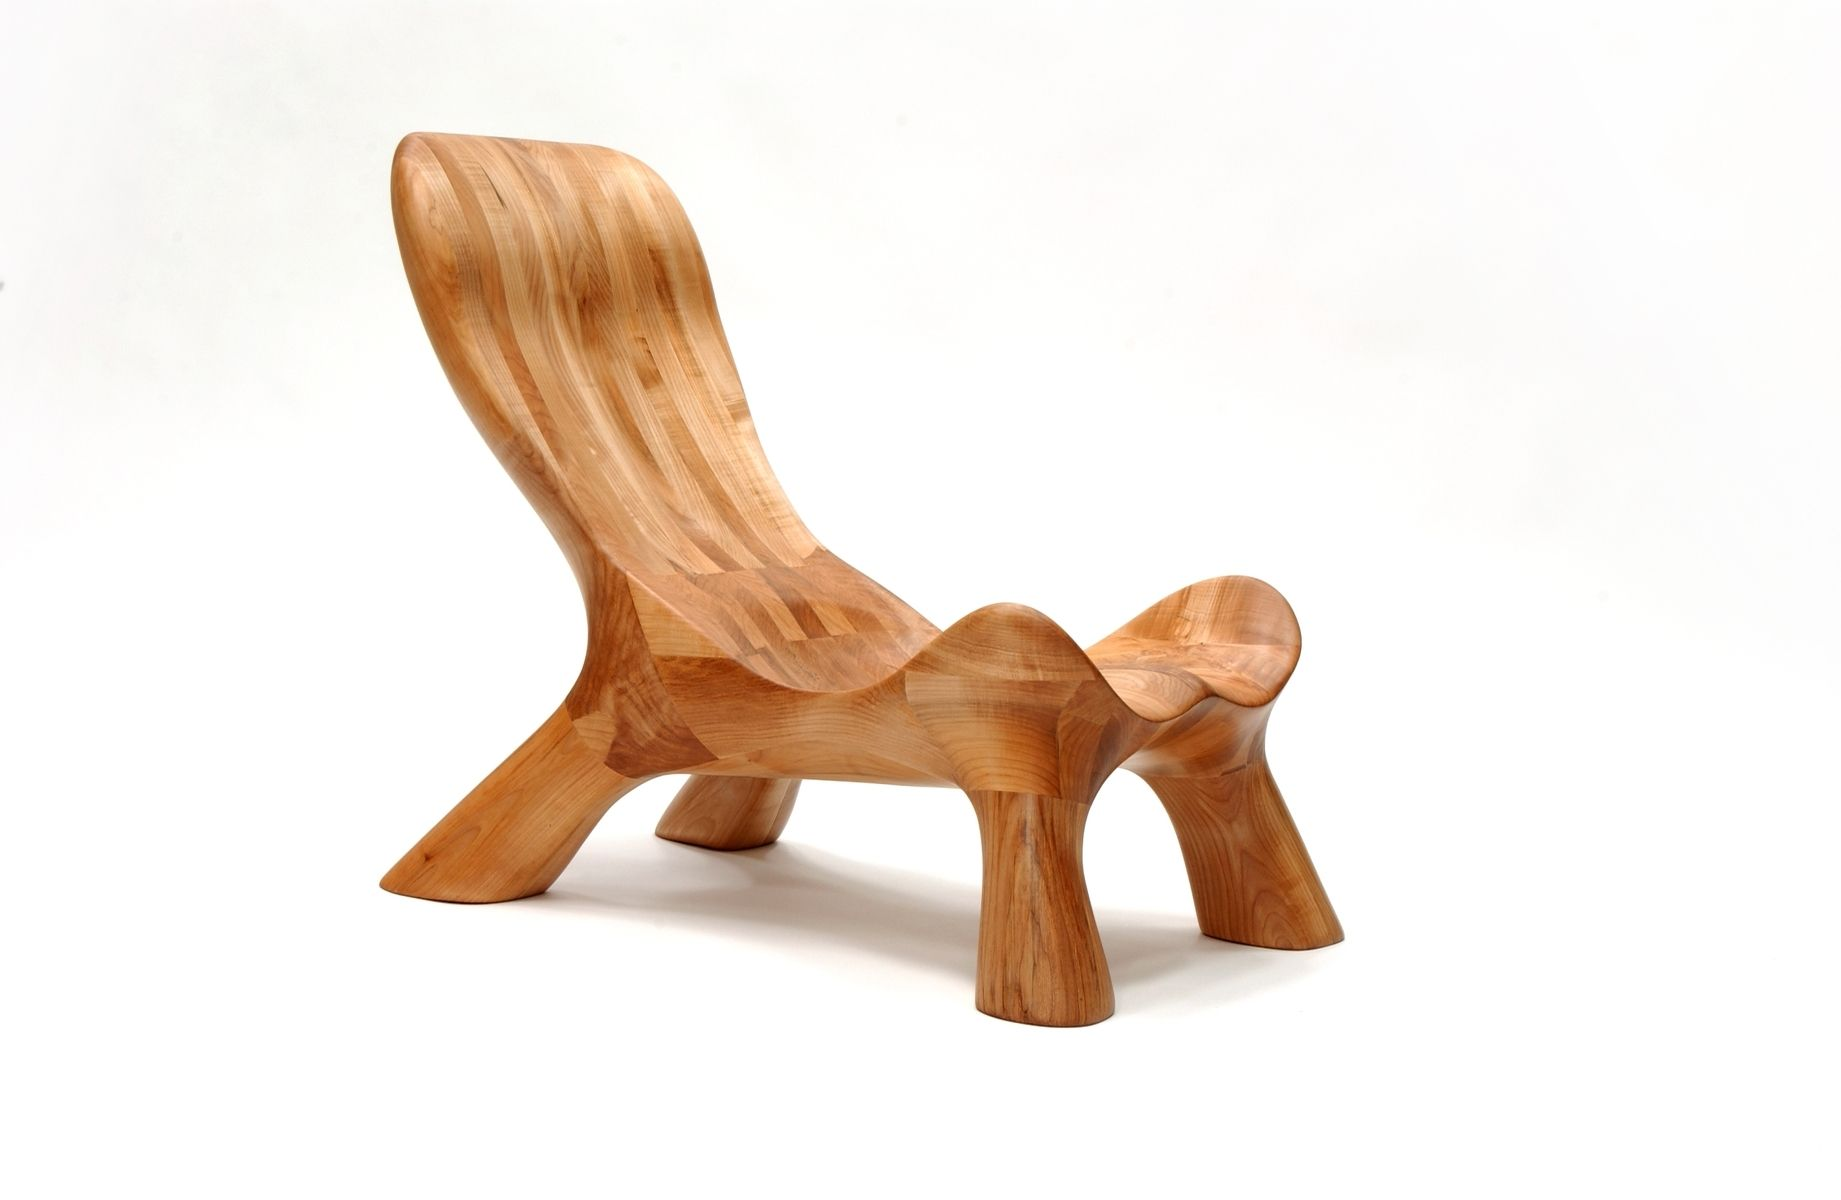 Handmade Curvechair Organically Carved Solid Wood Furniture By Nico Spacecraft